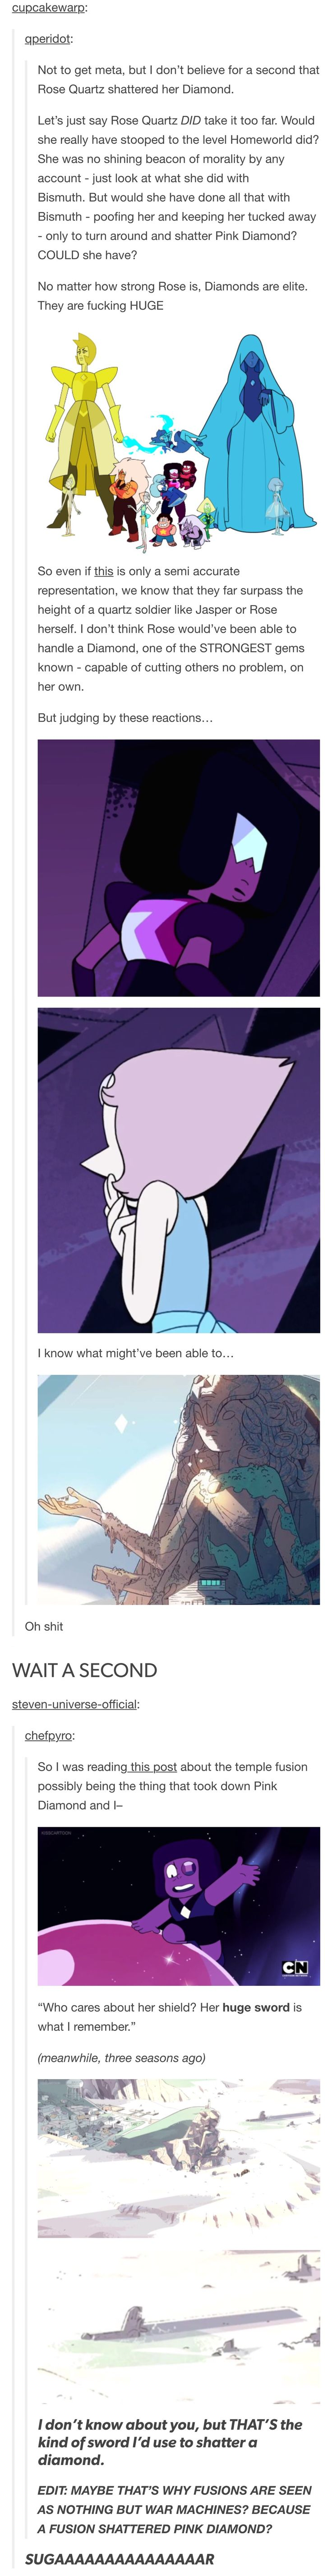 I kinda believe that rose did shatter pink diamond but it is hard to believe